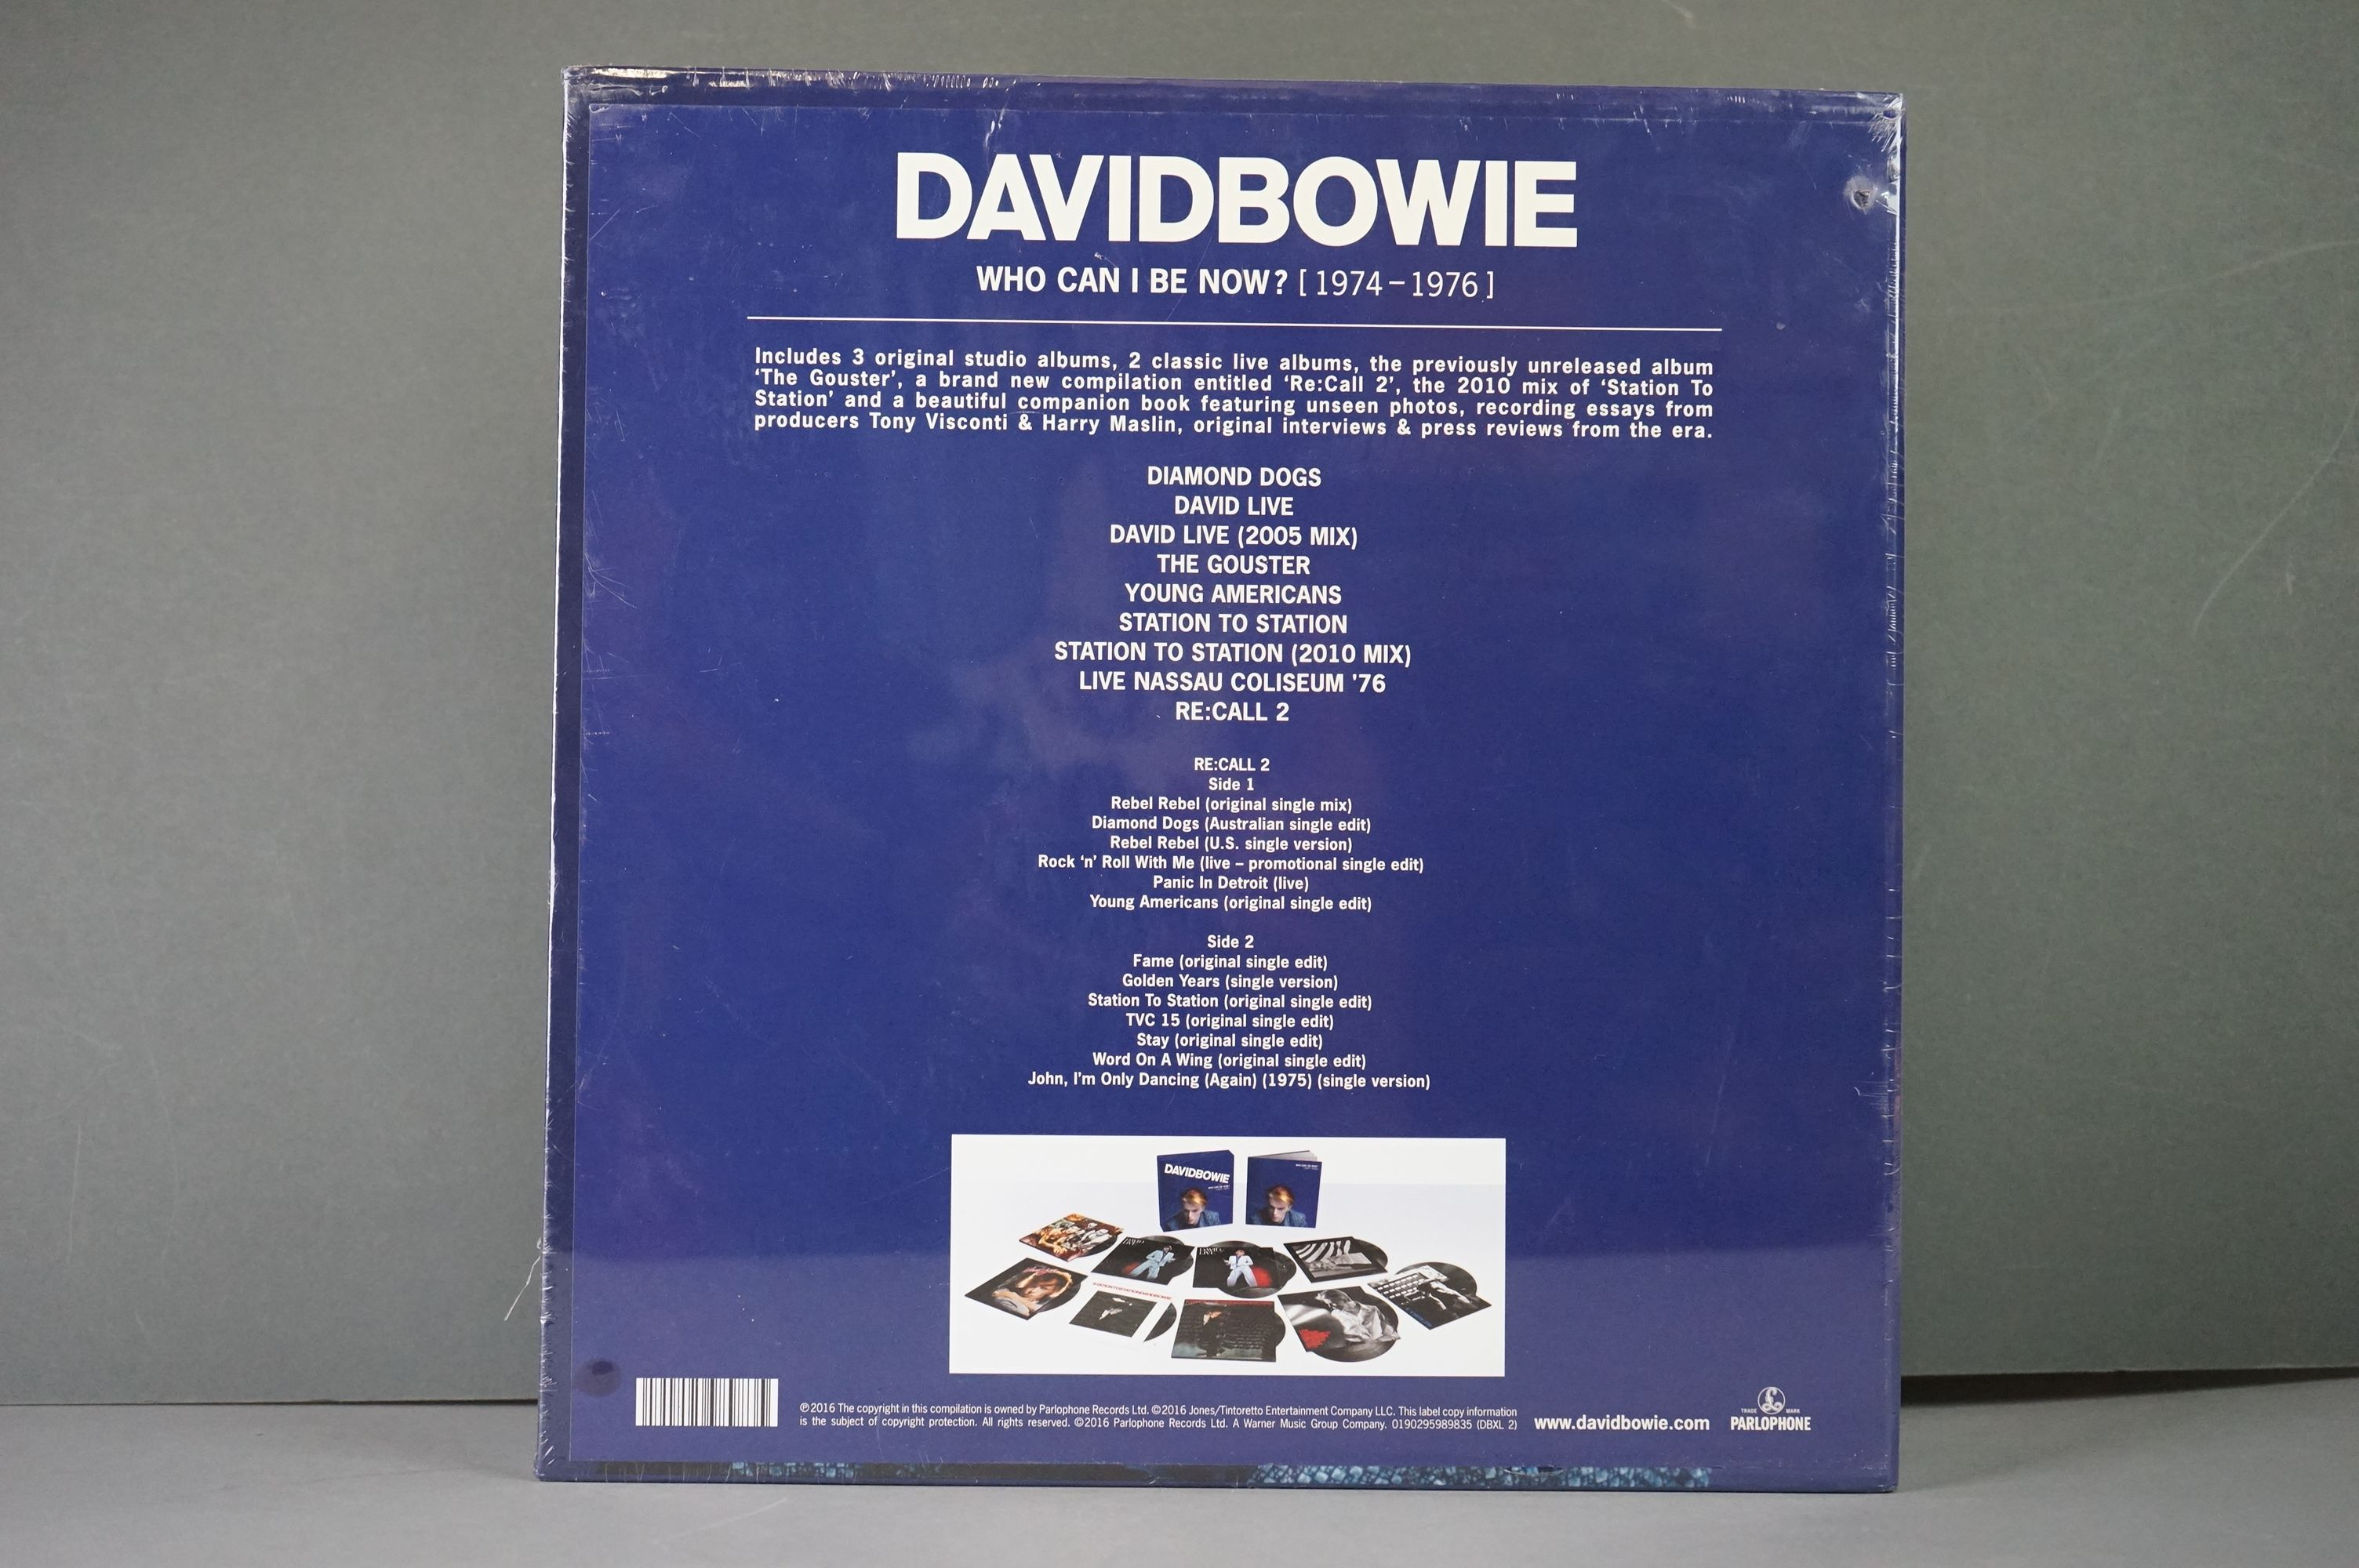 Vinyl - David Bowie Who Can I Be Now? (1974-1976) 9 LP Box Set DBXL2, sealed - Image 3 of 3